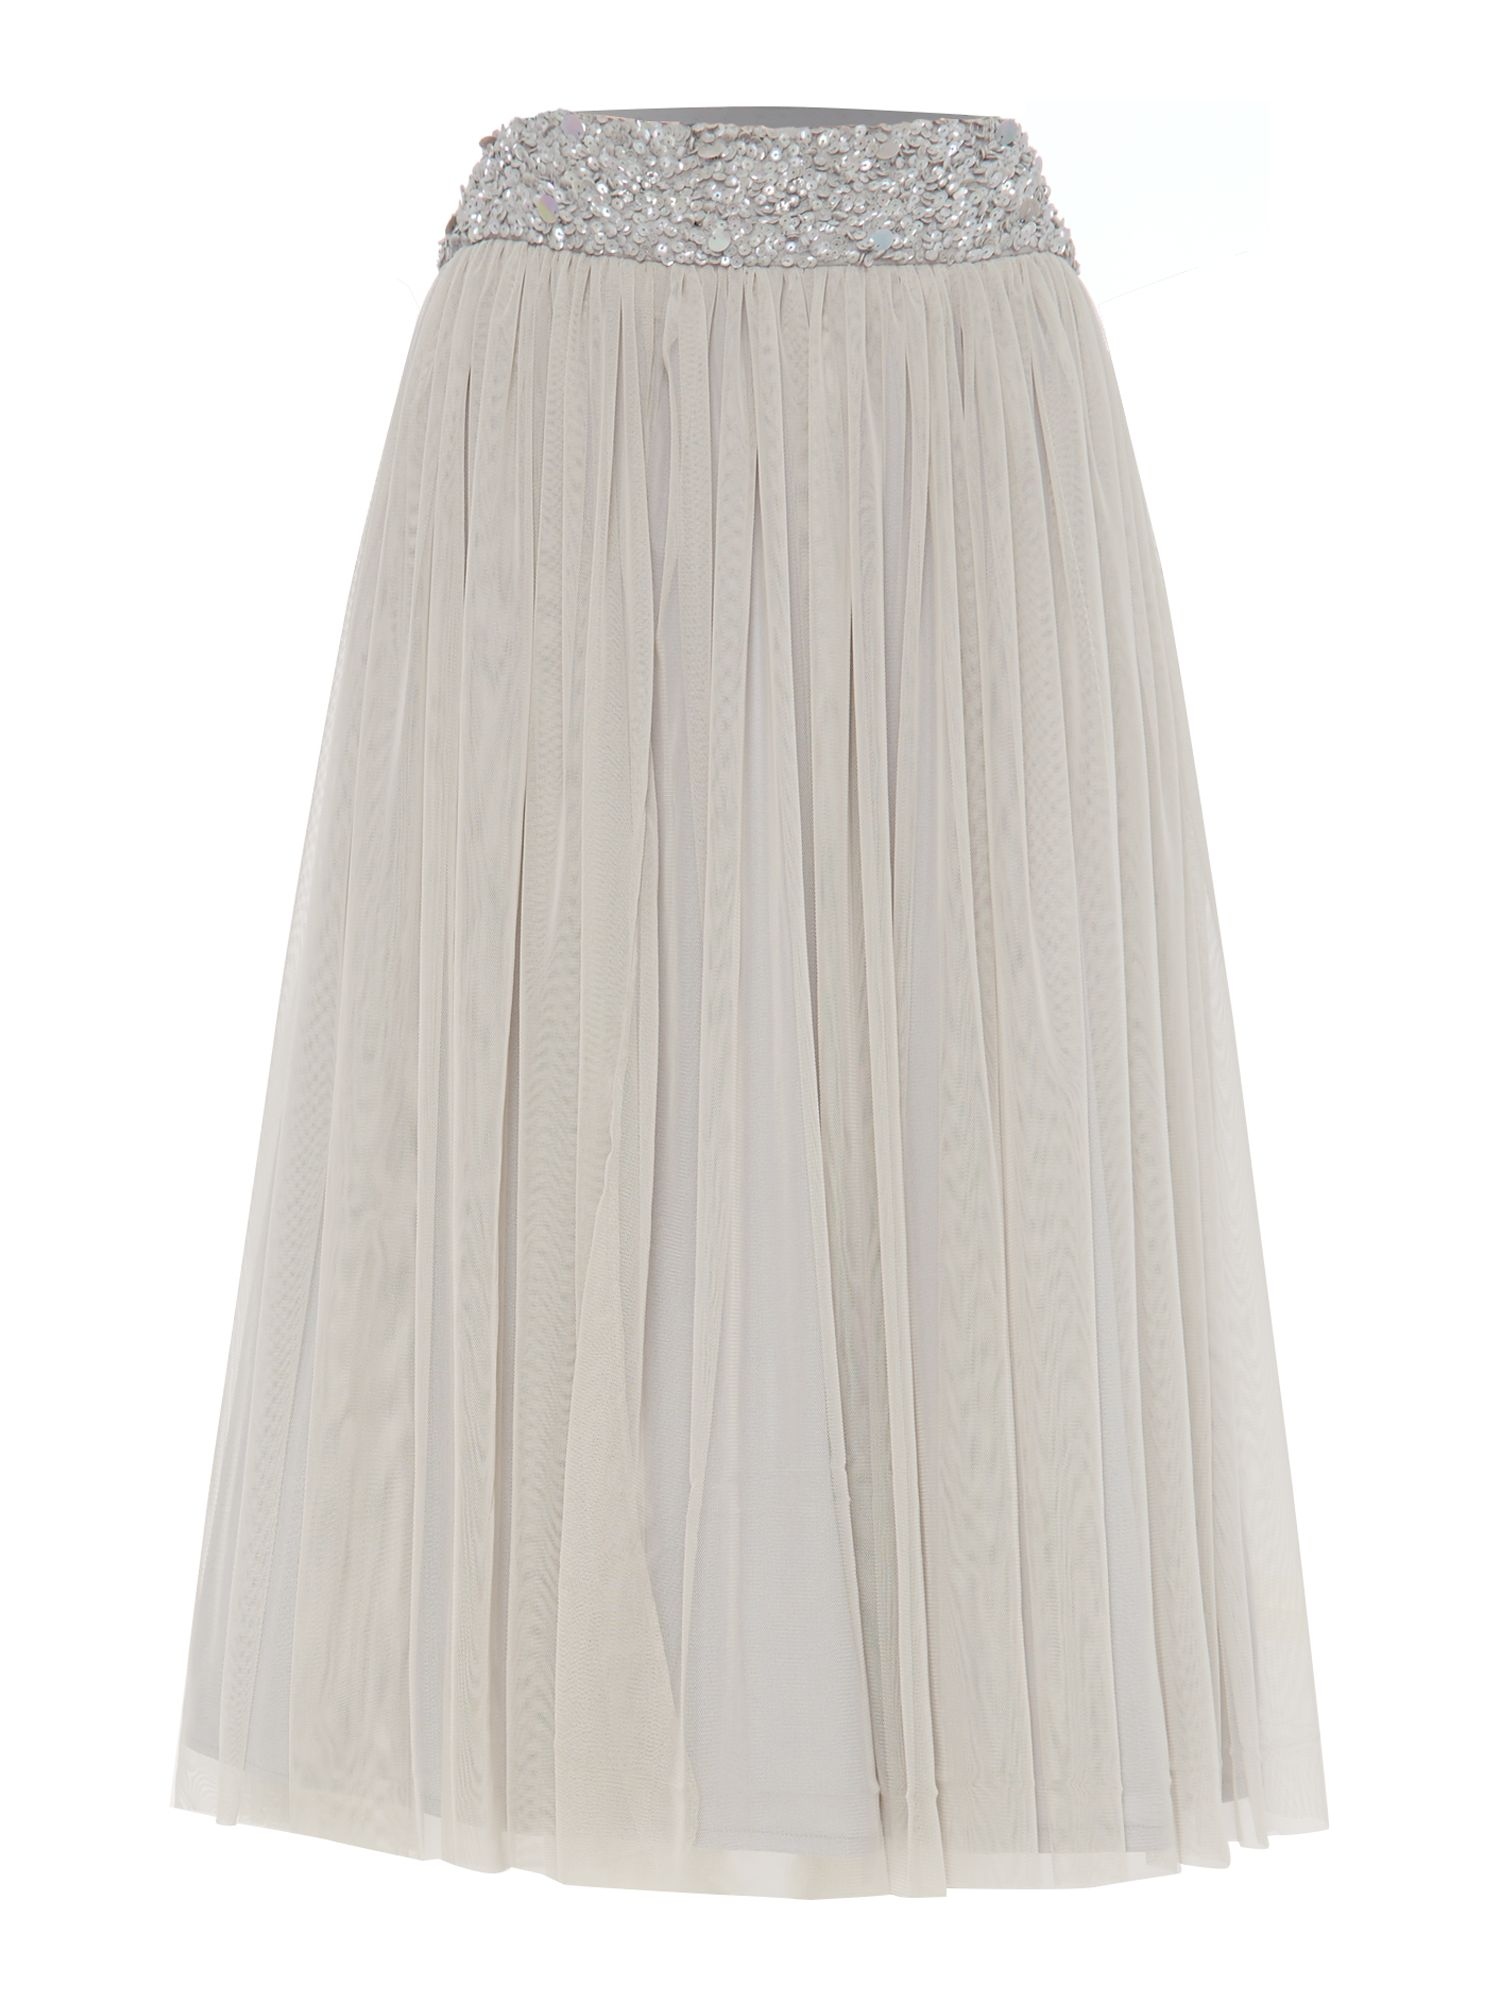 Lace and Beads Lace and Beads Embellished waistband midi skirt, Grey